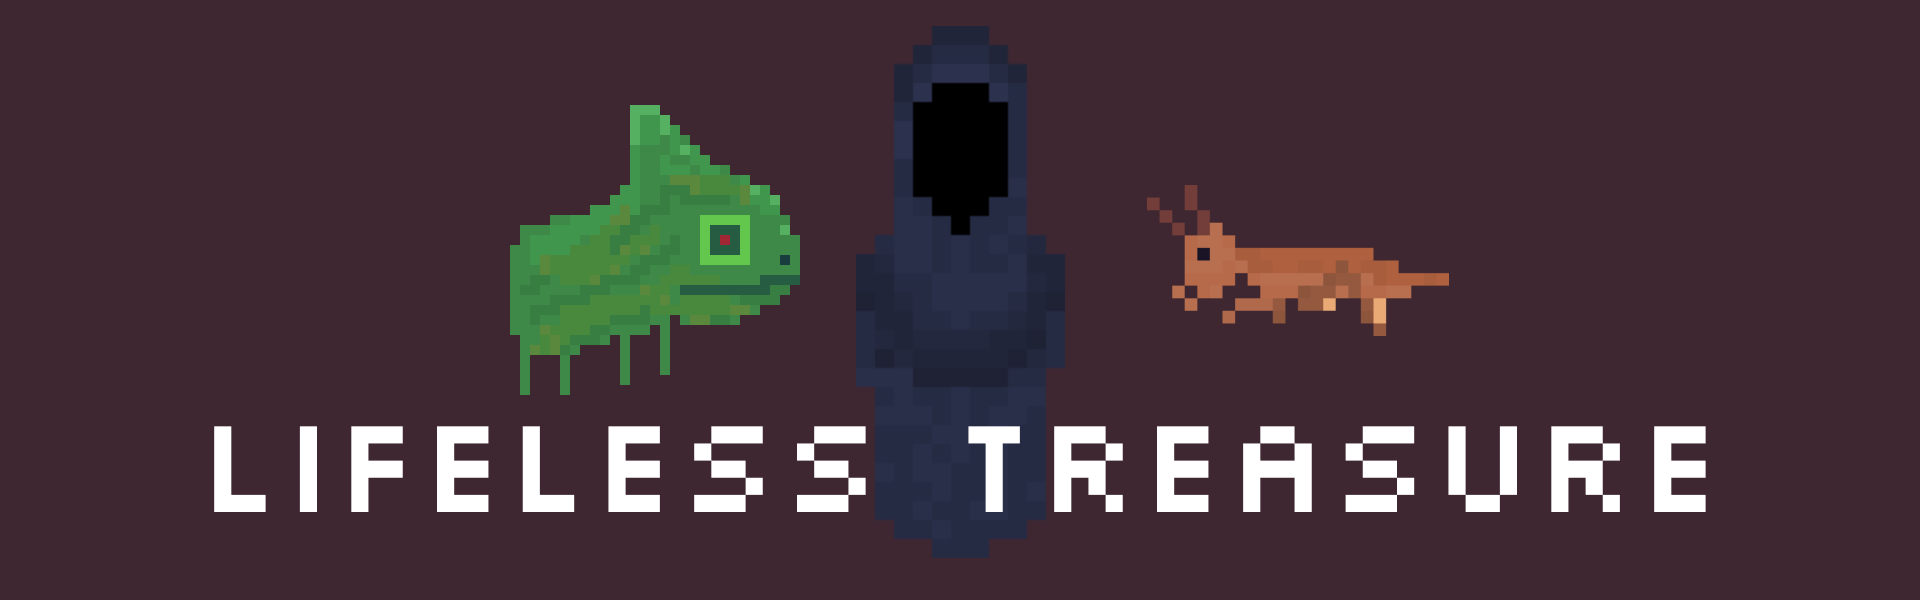 Lifeless Treasure LD44